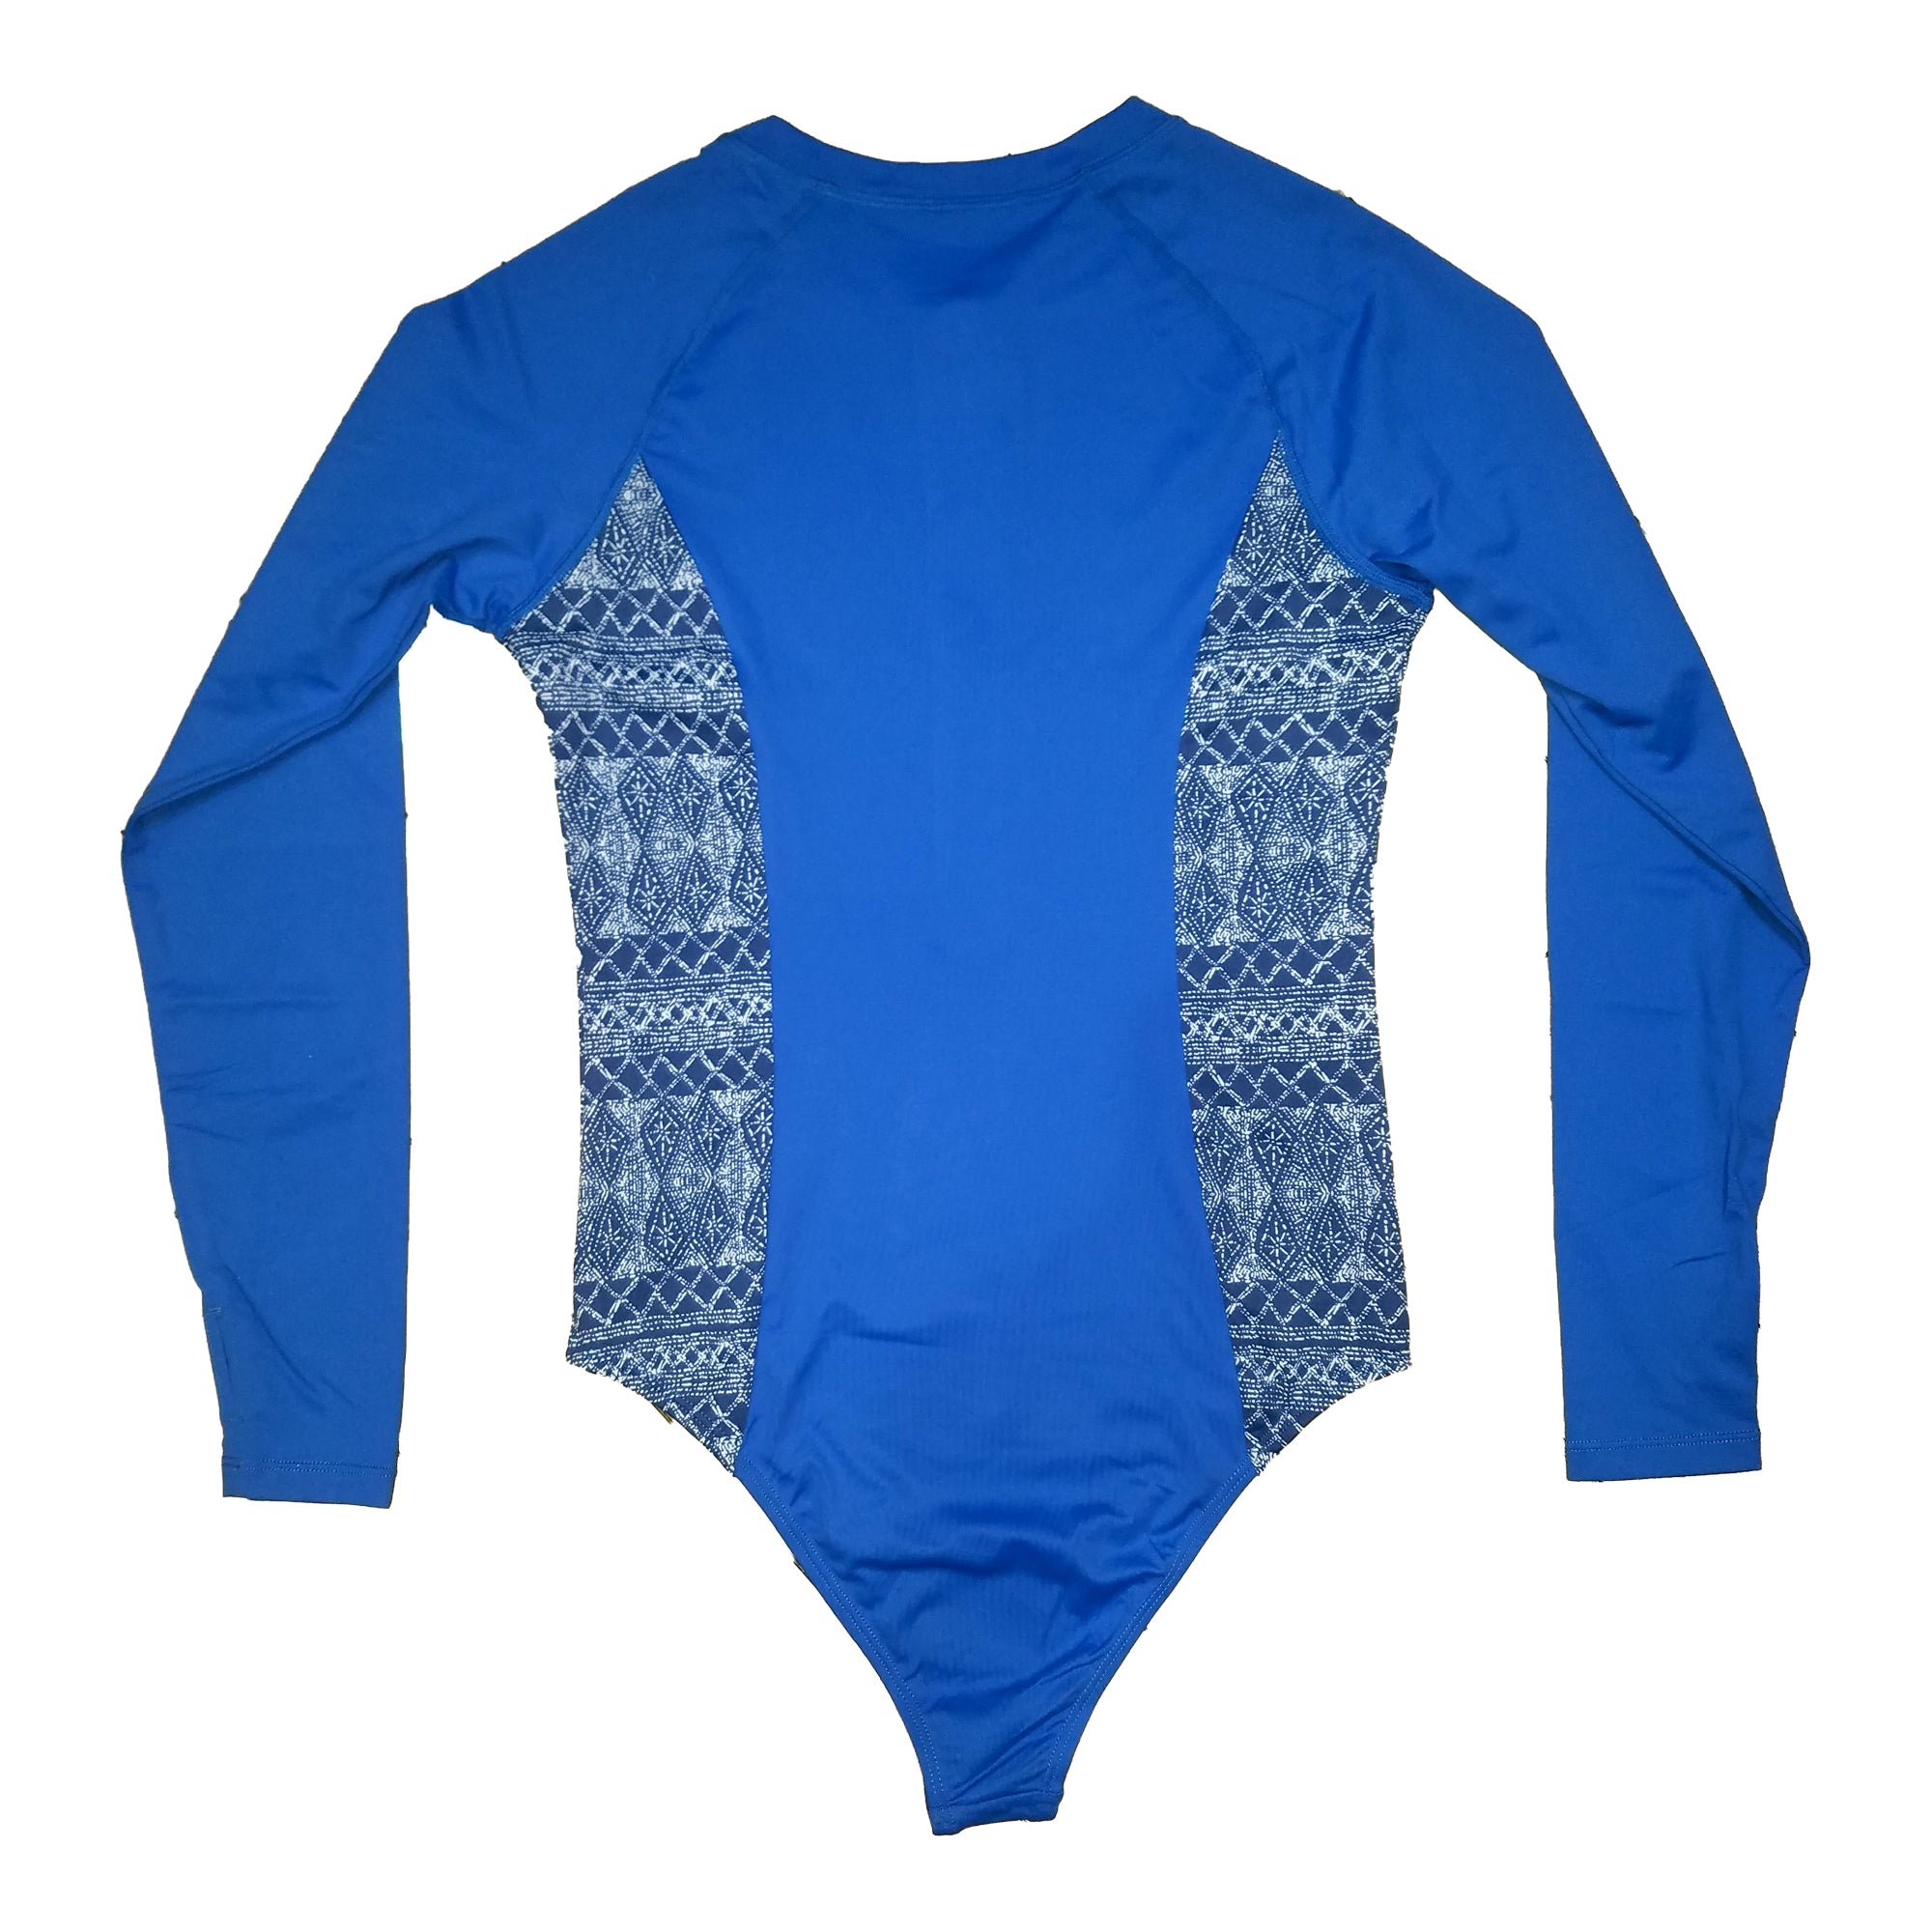 Surf Station Amalfi Women's One Piece L/S Rashguard - Blue